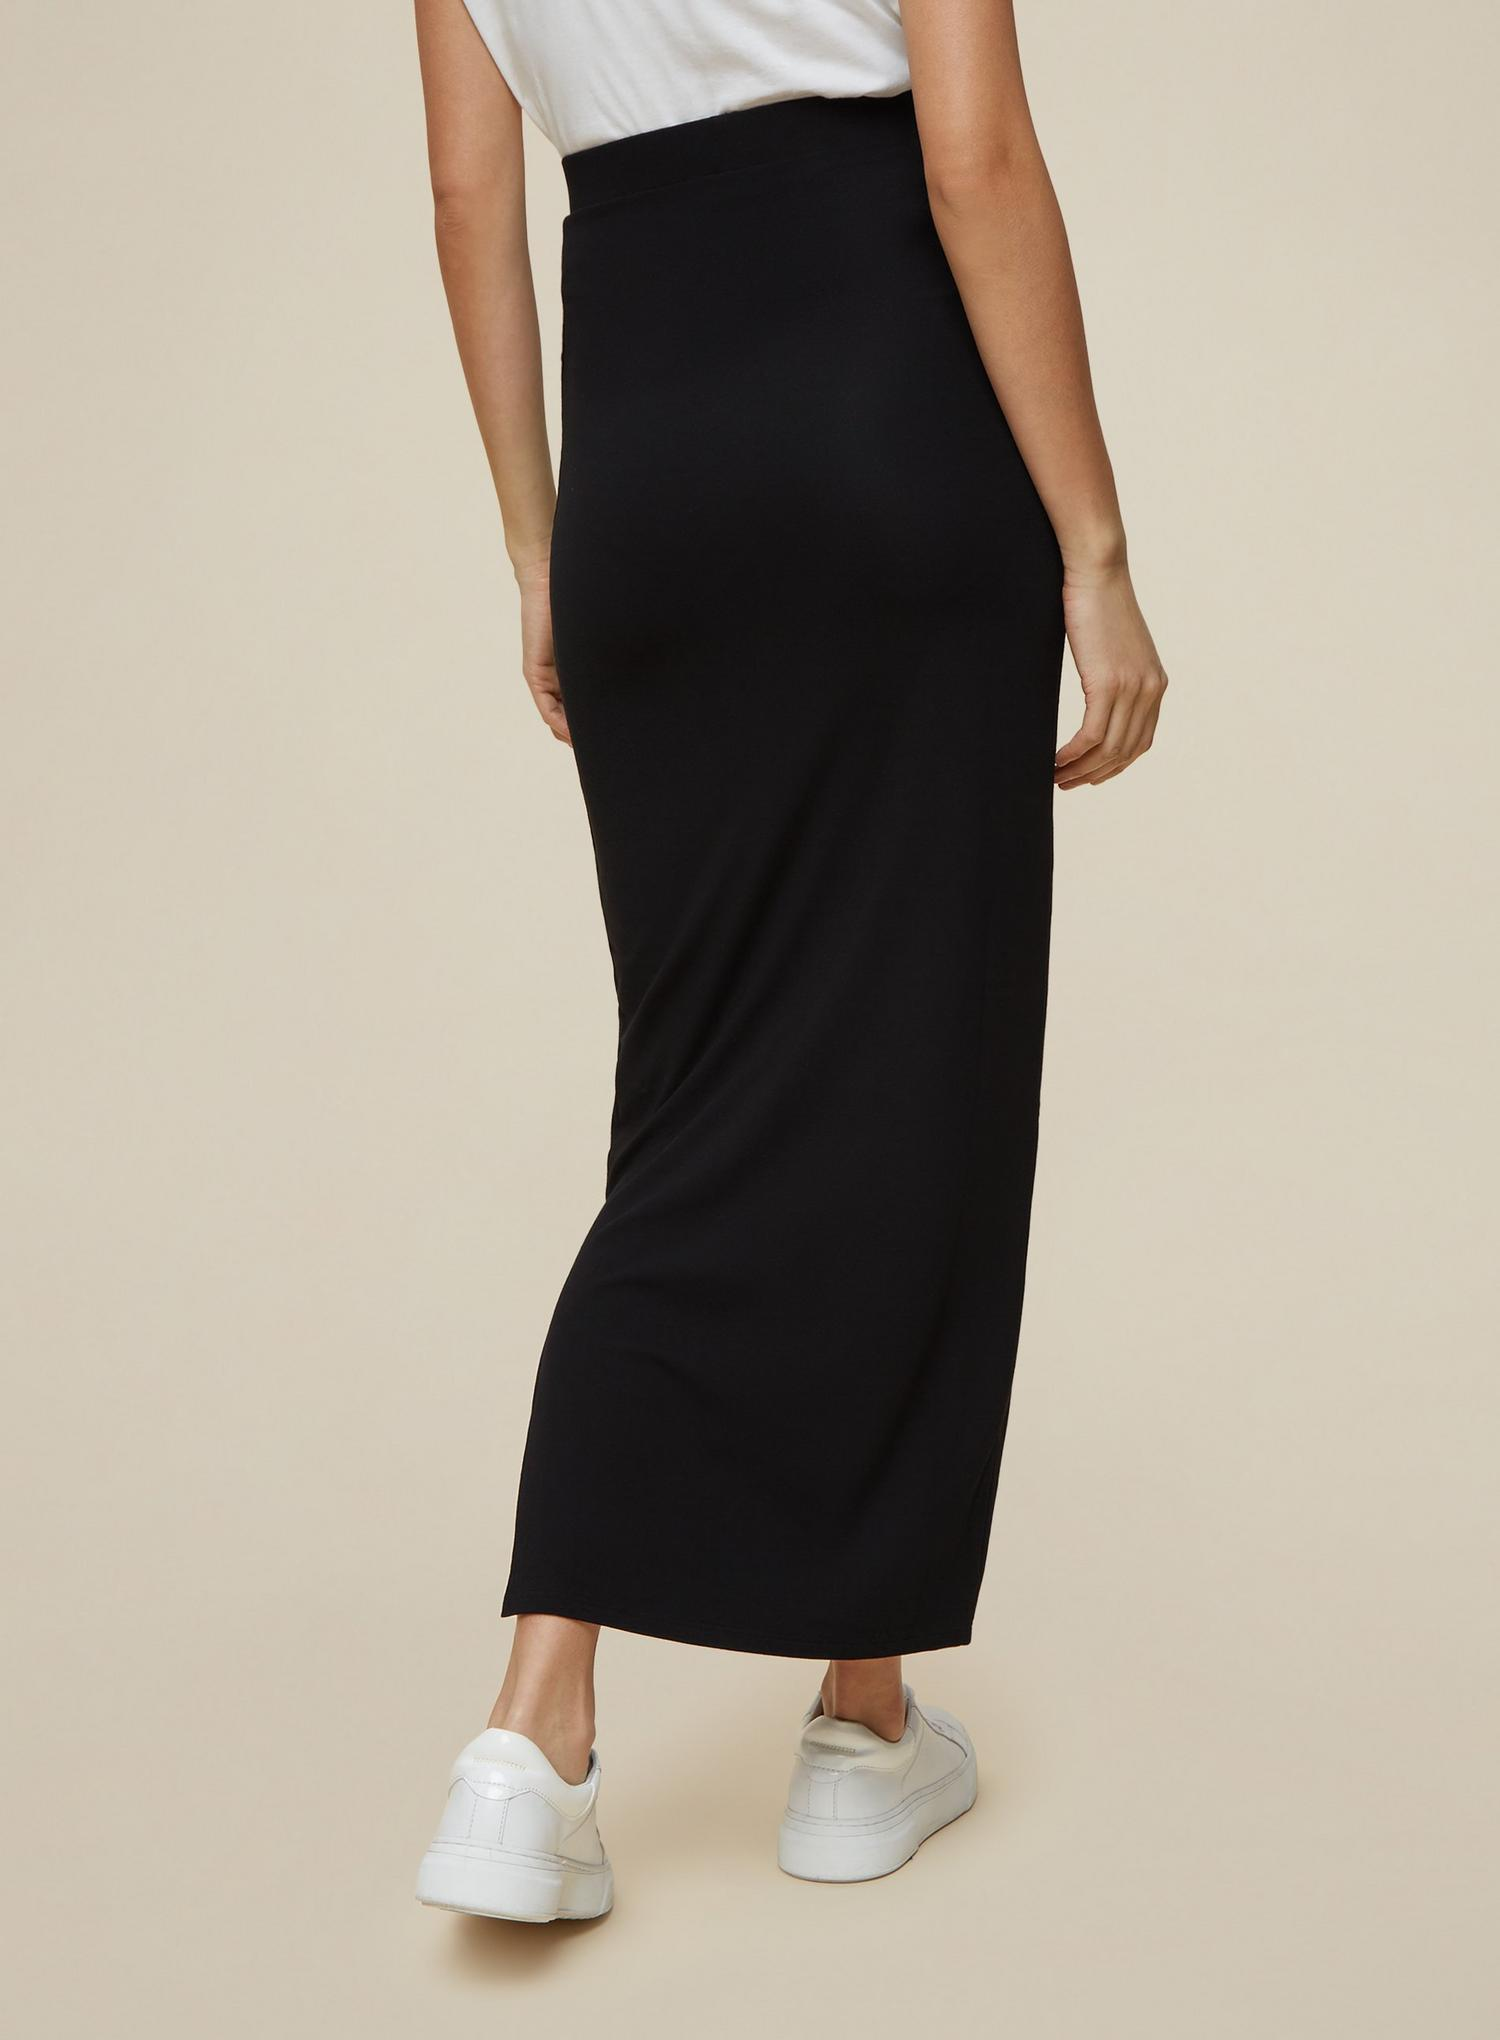 105 Tall Black Maxi Skirt image number 3